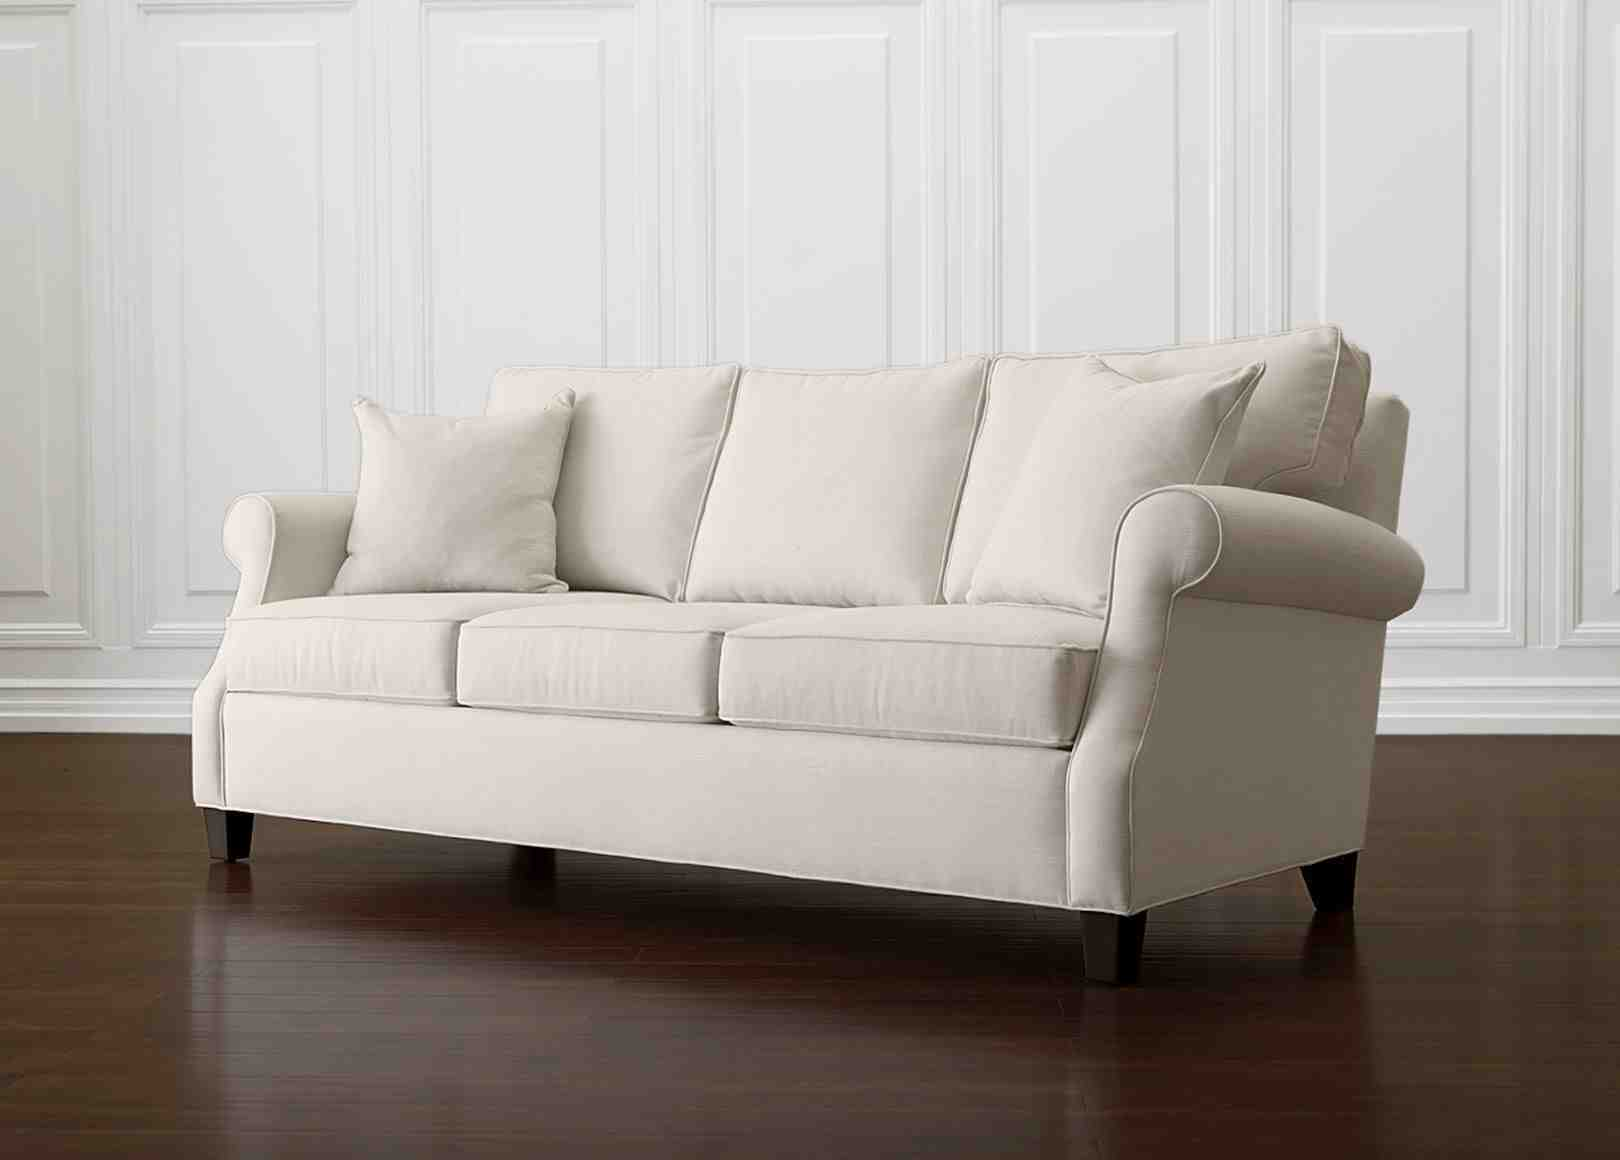 Ethan Allen Sofas On Sale Home Furniture Design